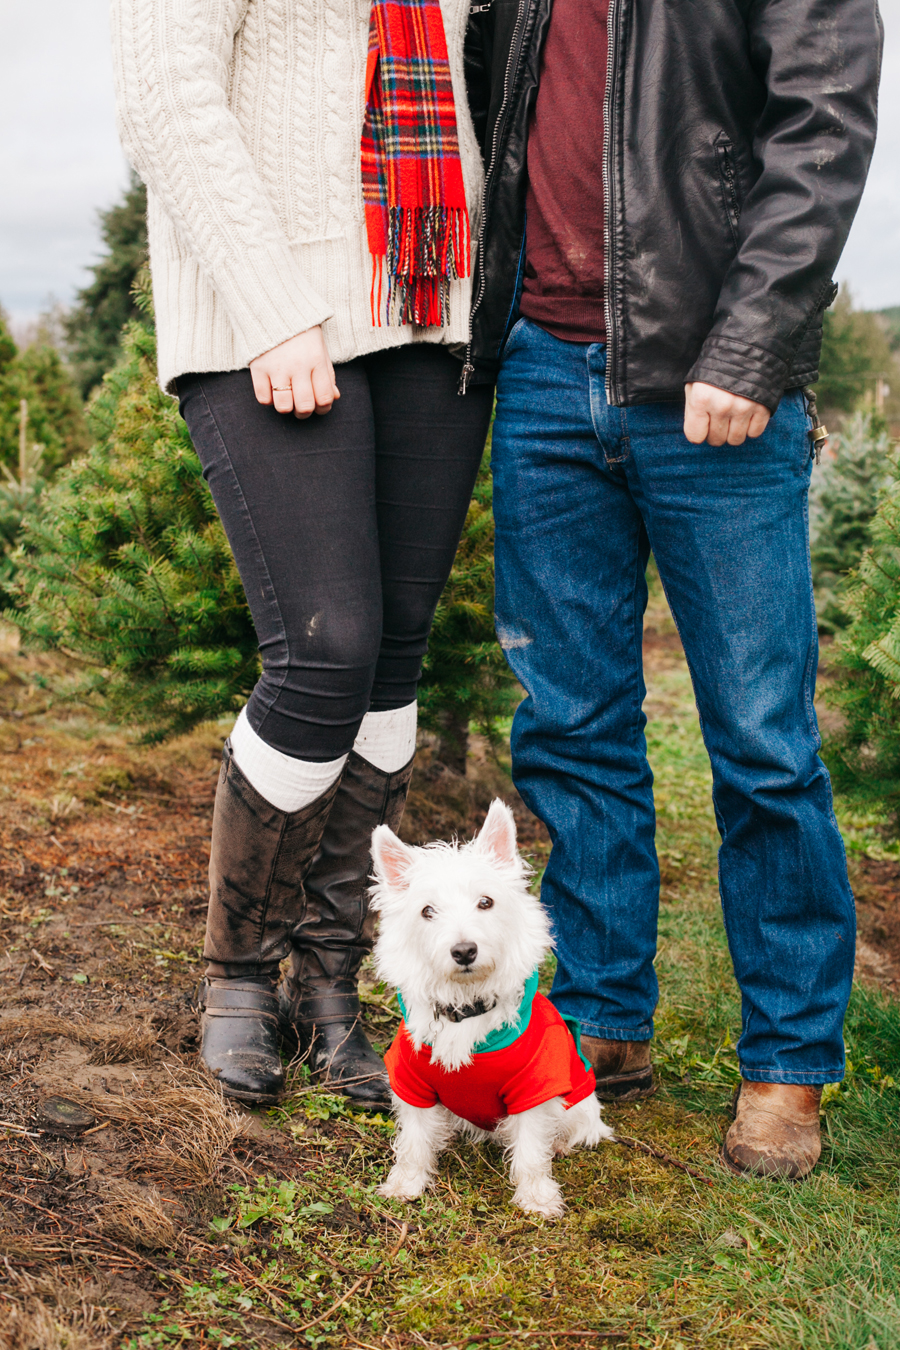 013-fullner-family-christmas-tree-farm-everson-washington-bellingham-family-photographer-katheryn-moran-photography.jpg